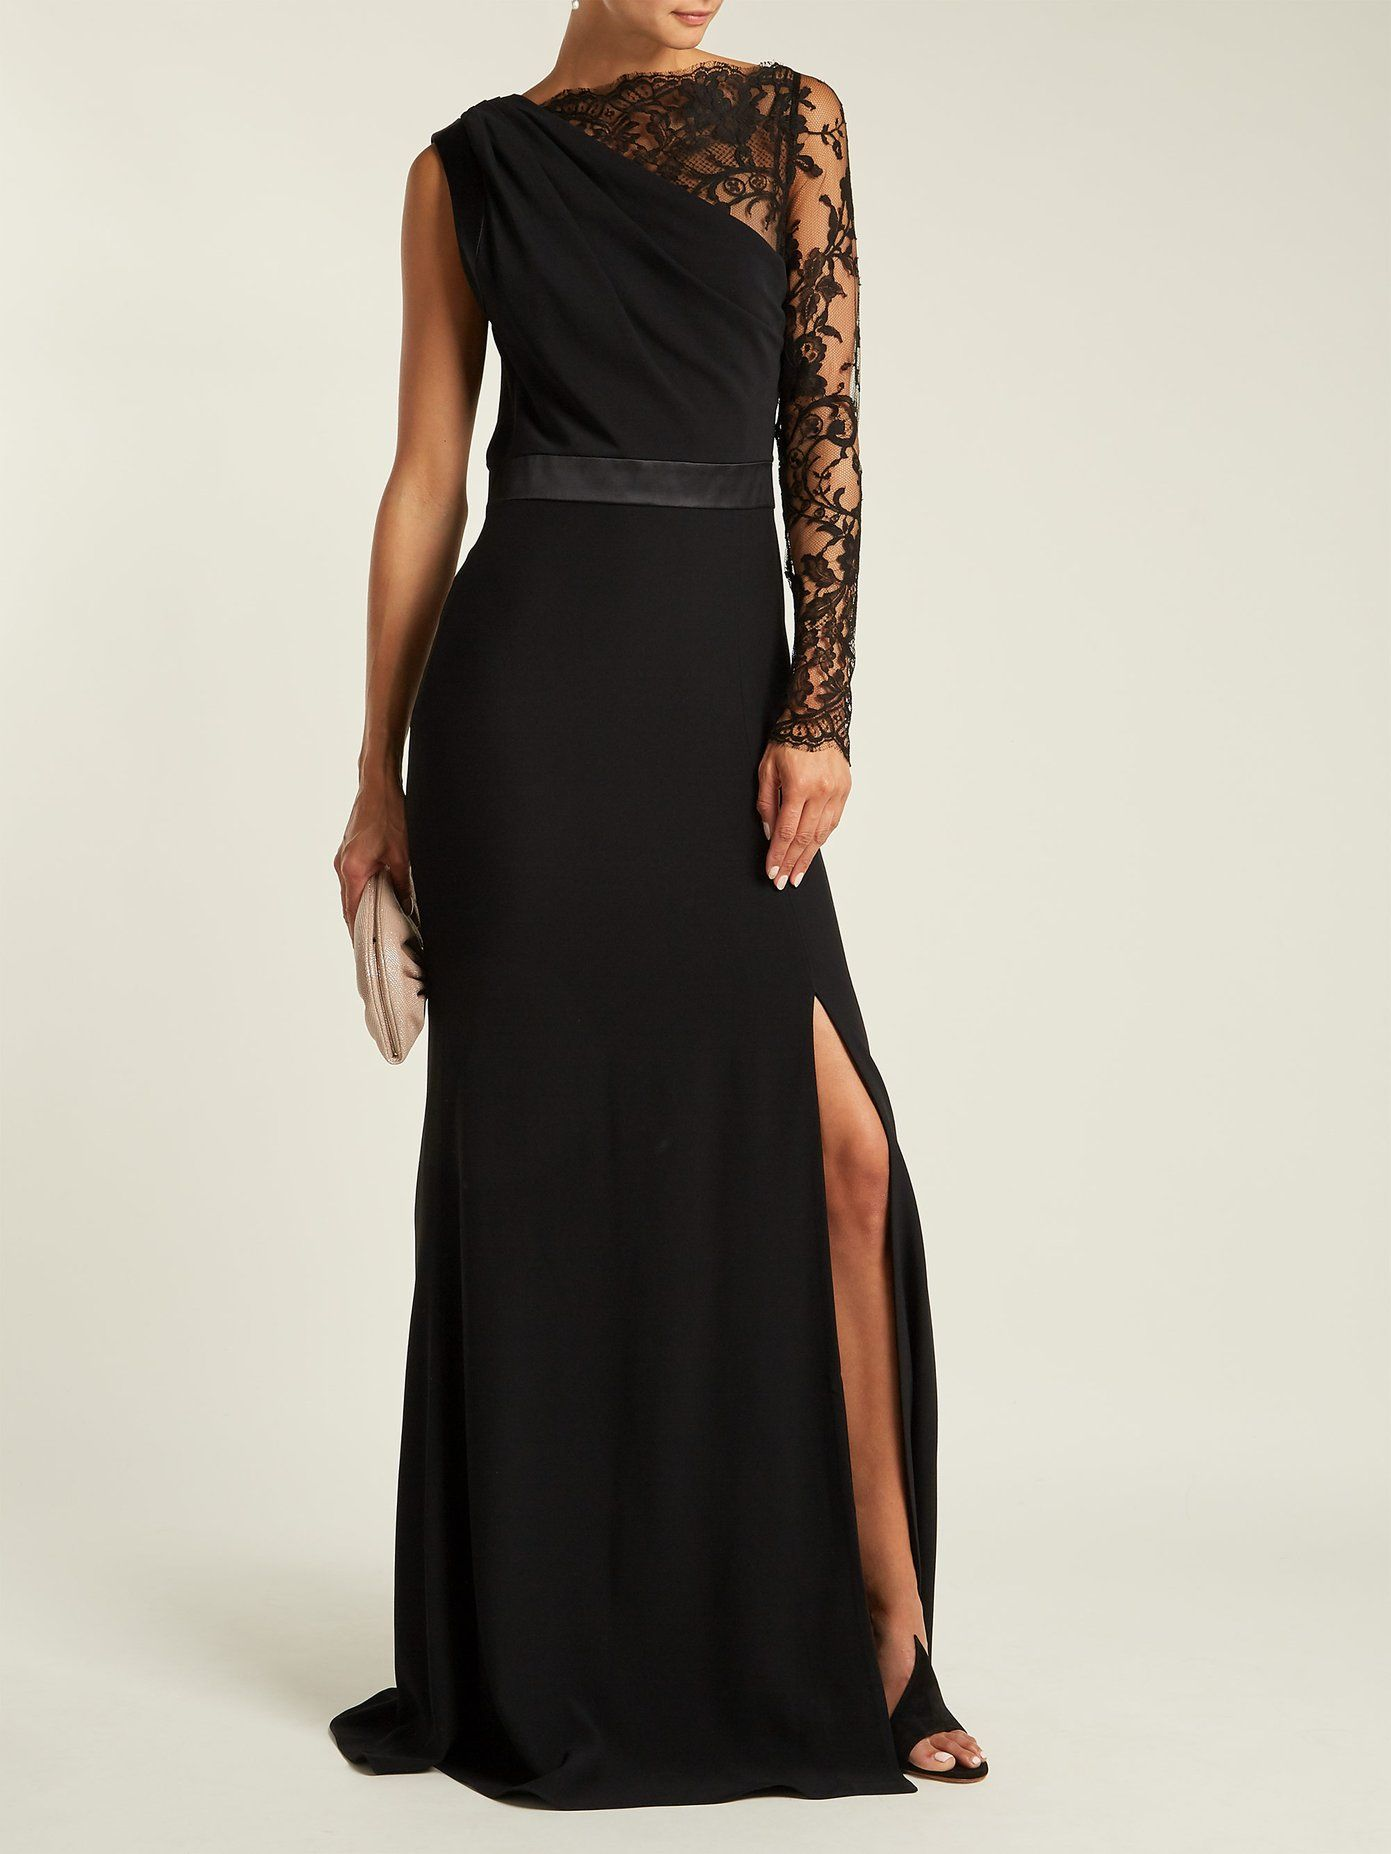 One Shoulder Lace And Crepe Gown Alexander Mcqueen Matchesfashion Com Uk Alexander Mcqueen Gowns Lace Sleeves